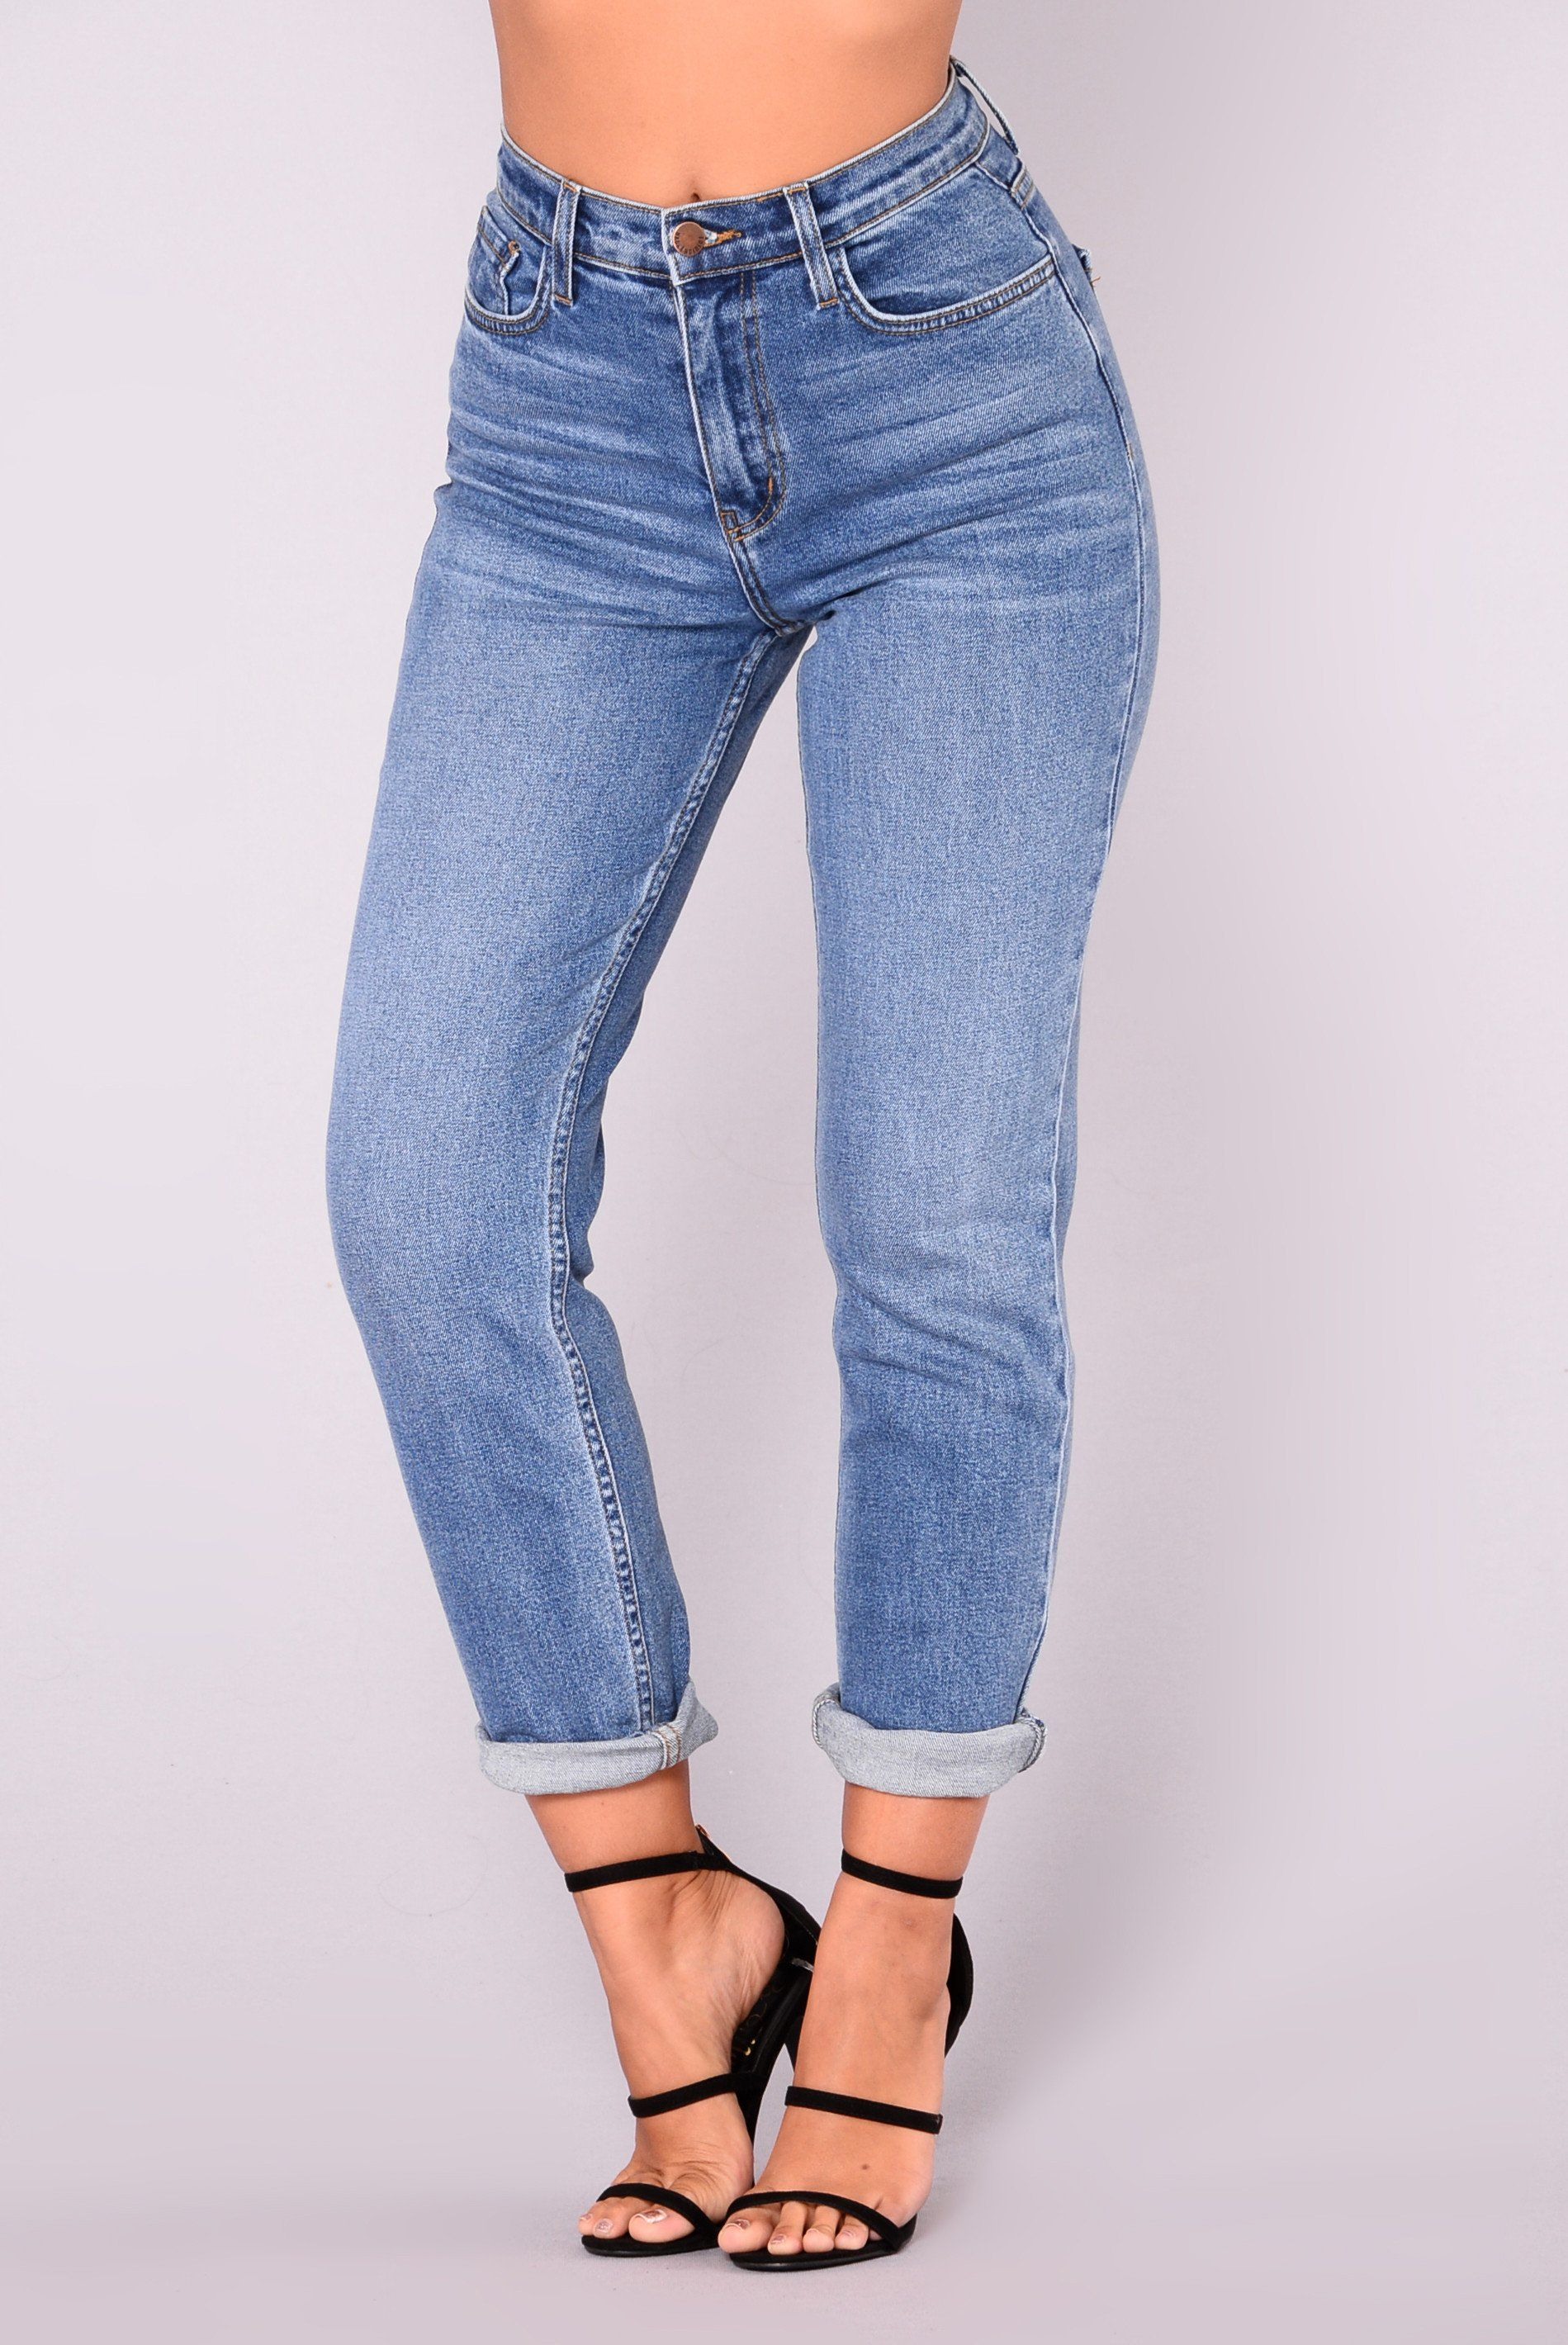 99c4f42cf Available In Medium Stretchy Fit Mom Jeans High-Rise 99% Cotton 1% Lycra